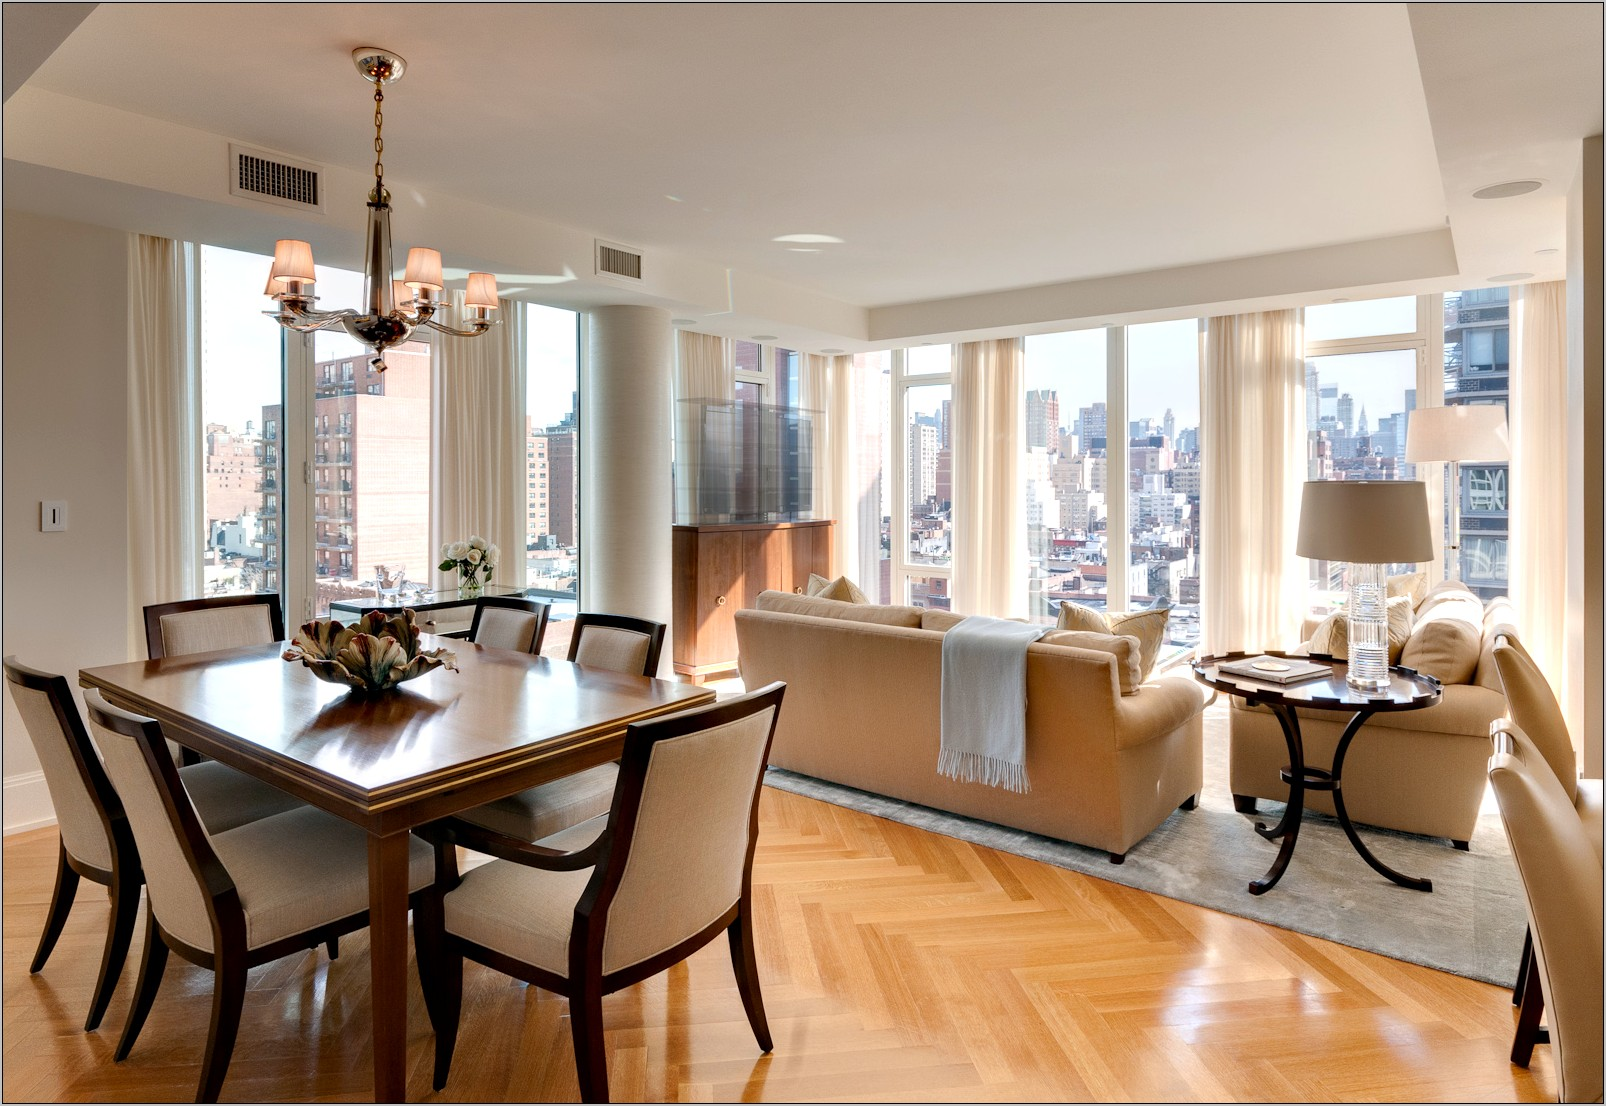 Living Room Dining Room Combination Decorating Ideas